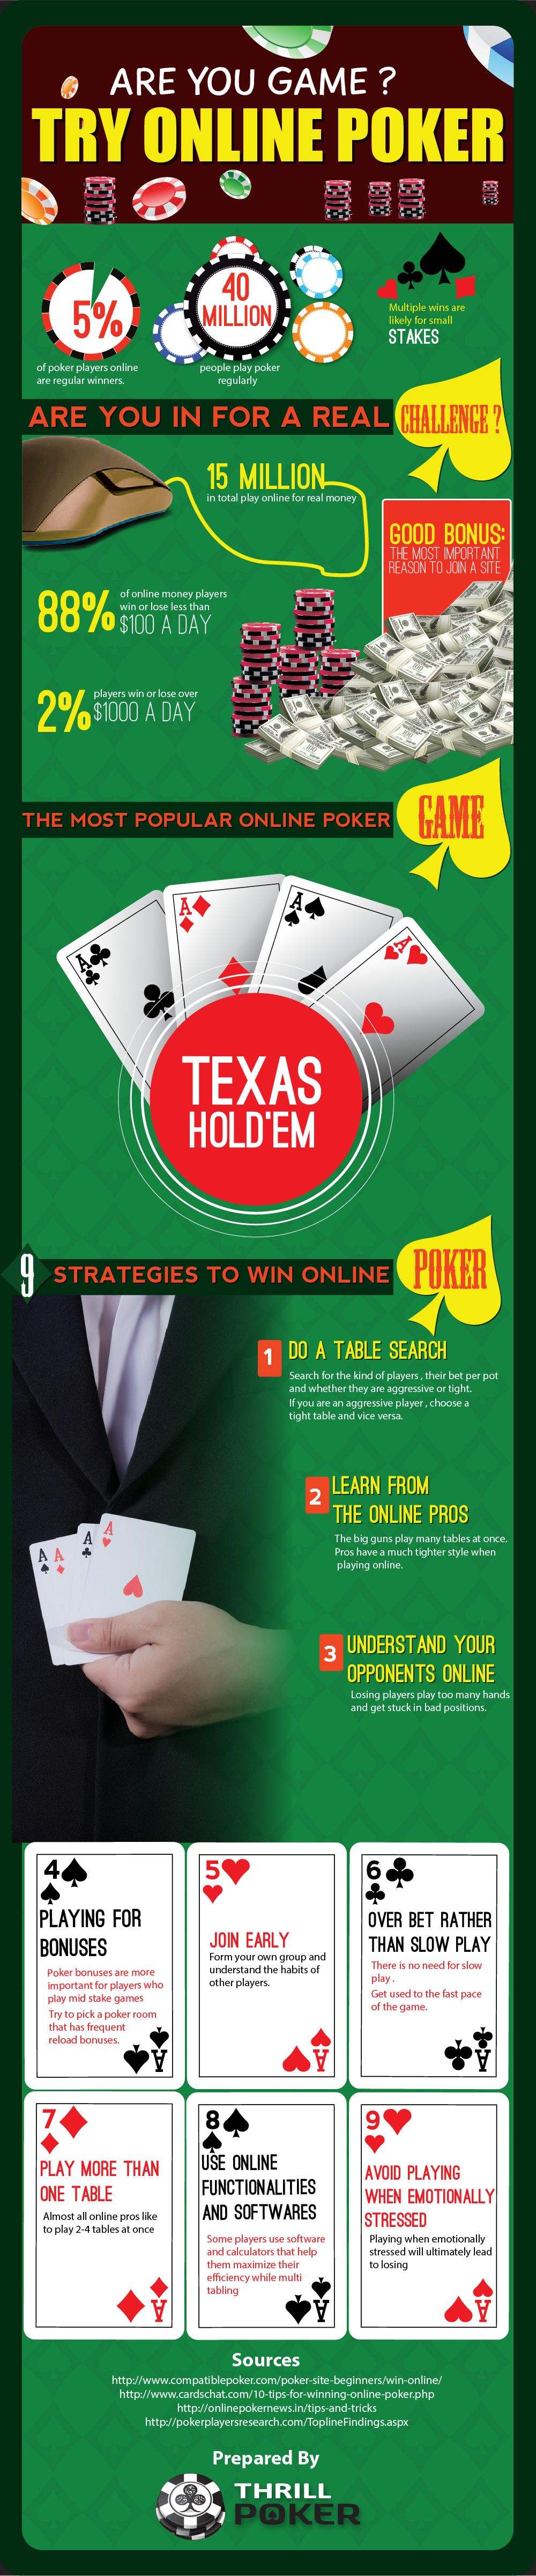 Are you gametry online poker infographic thrill poker